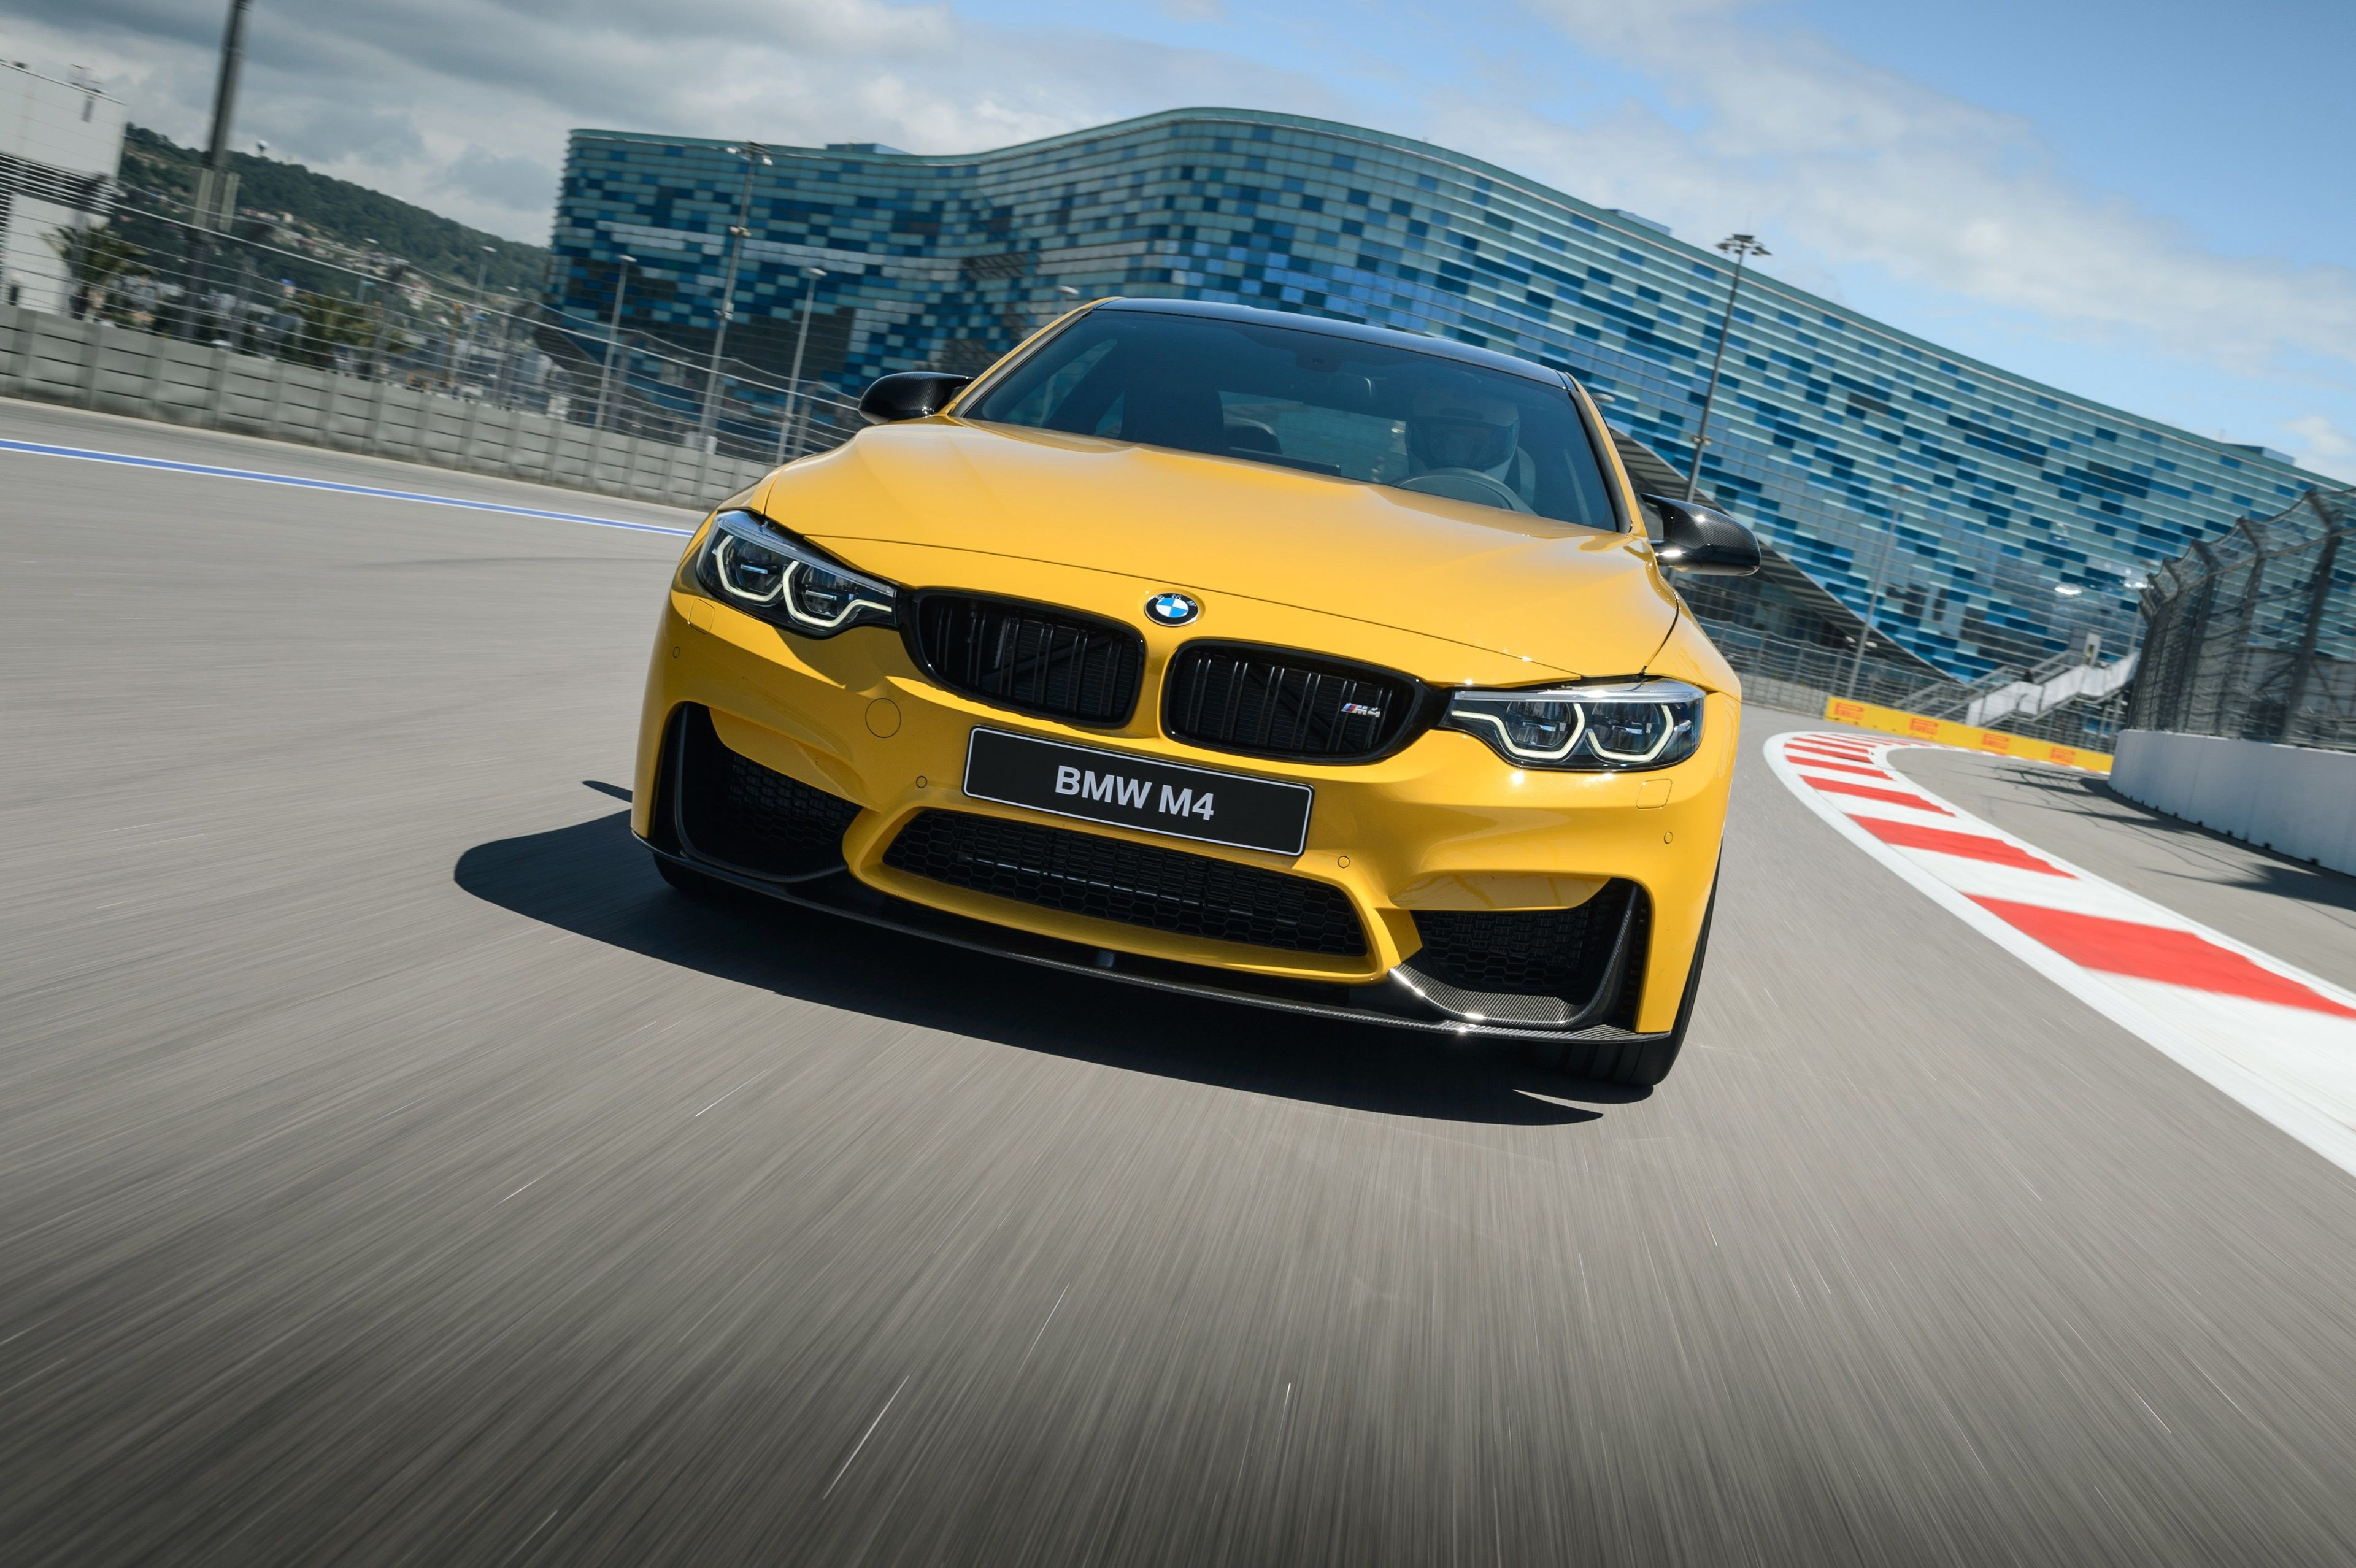 3840x2556 bmw m4 competition 4k wallpaper image